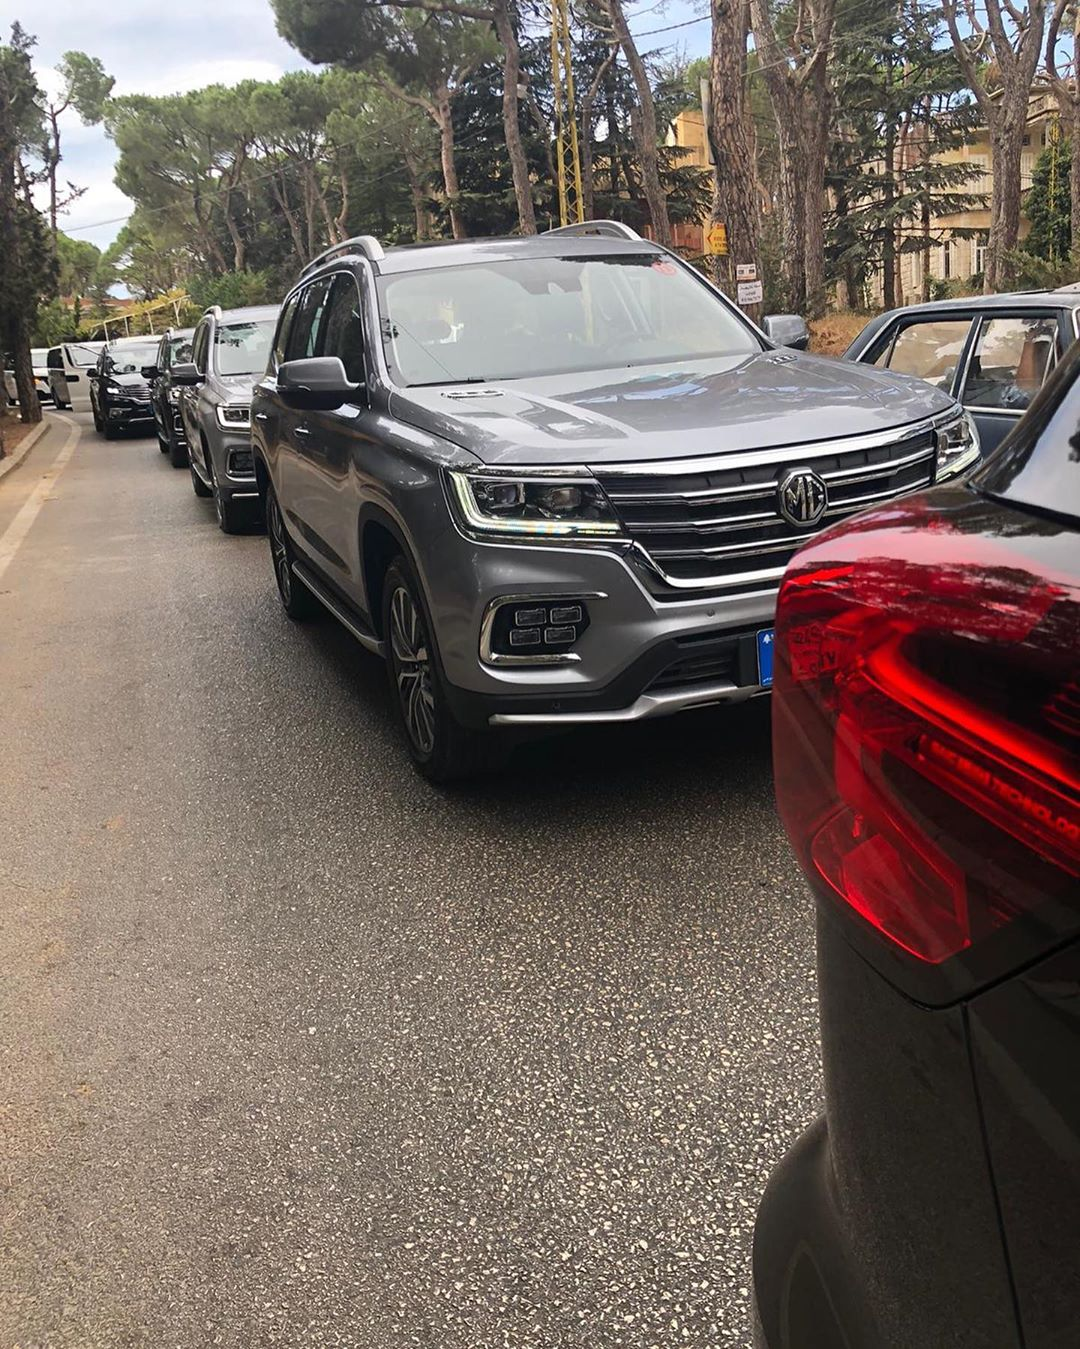 A tour in Lebanon with MG Qatar